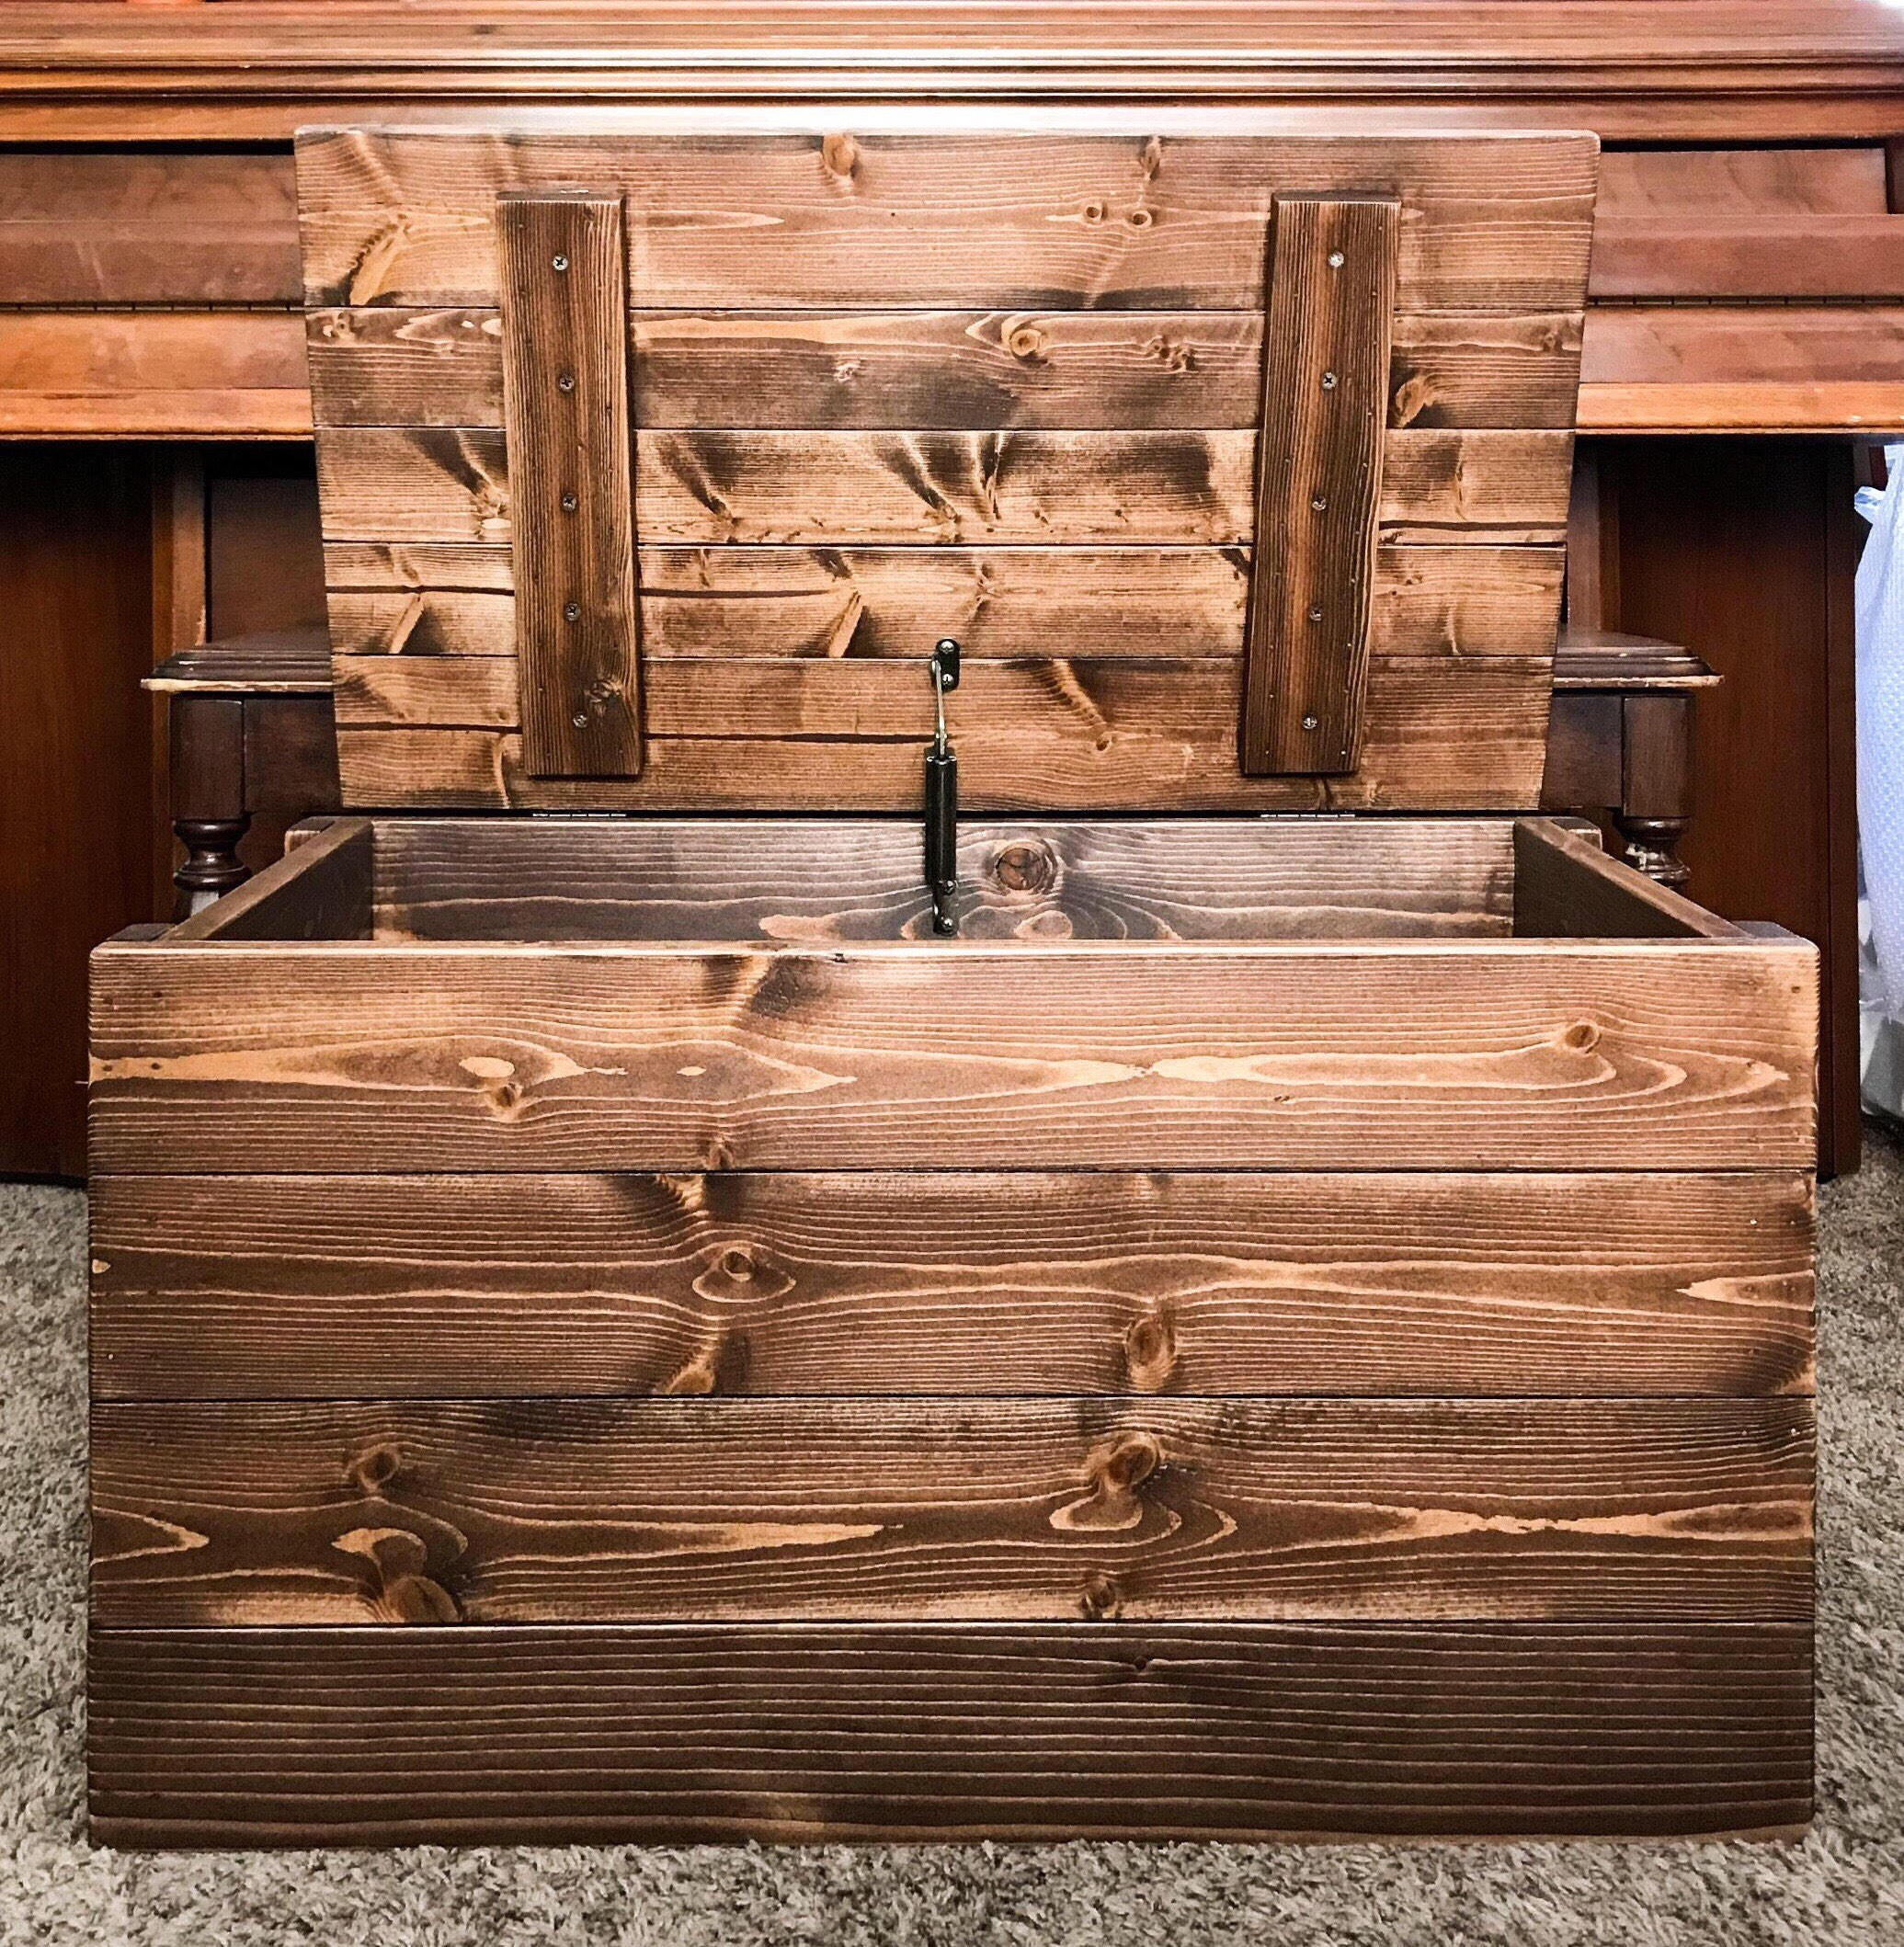 & Rustic Wood Storage Trunk Blanket Chest Square Stock Wood Dark Walnut